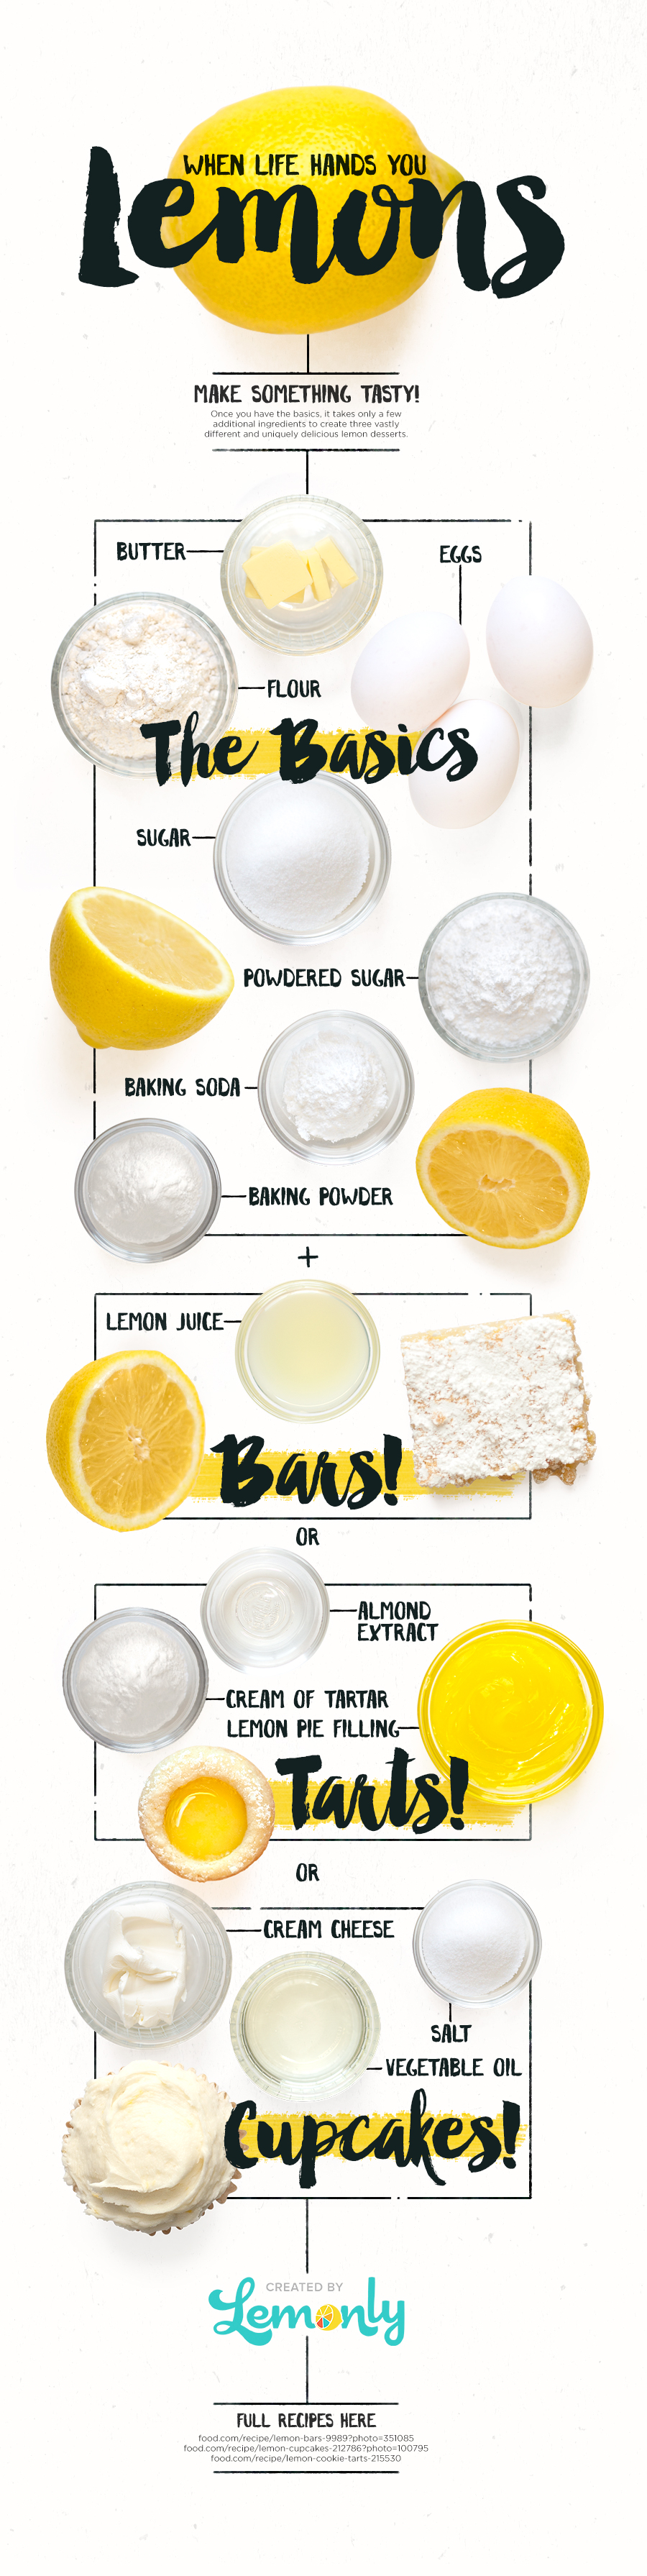 When Life Hands You Lemons: A Photo Recipe | Best Food Infographics